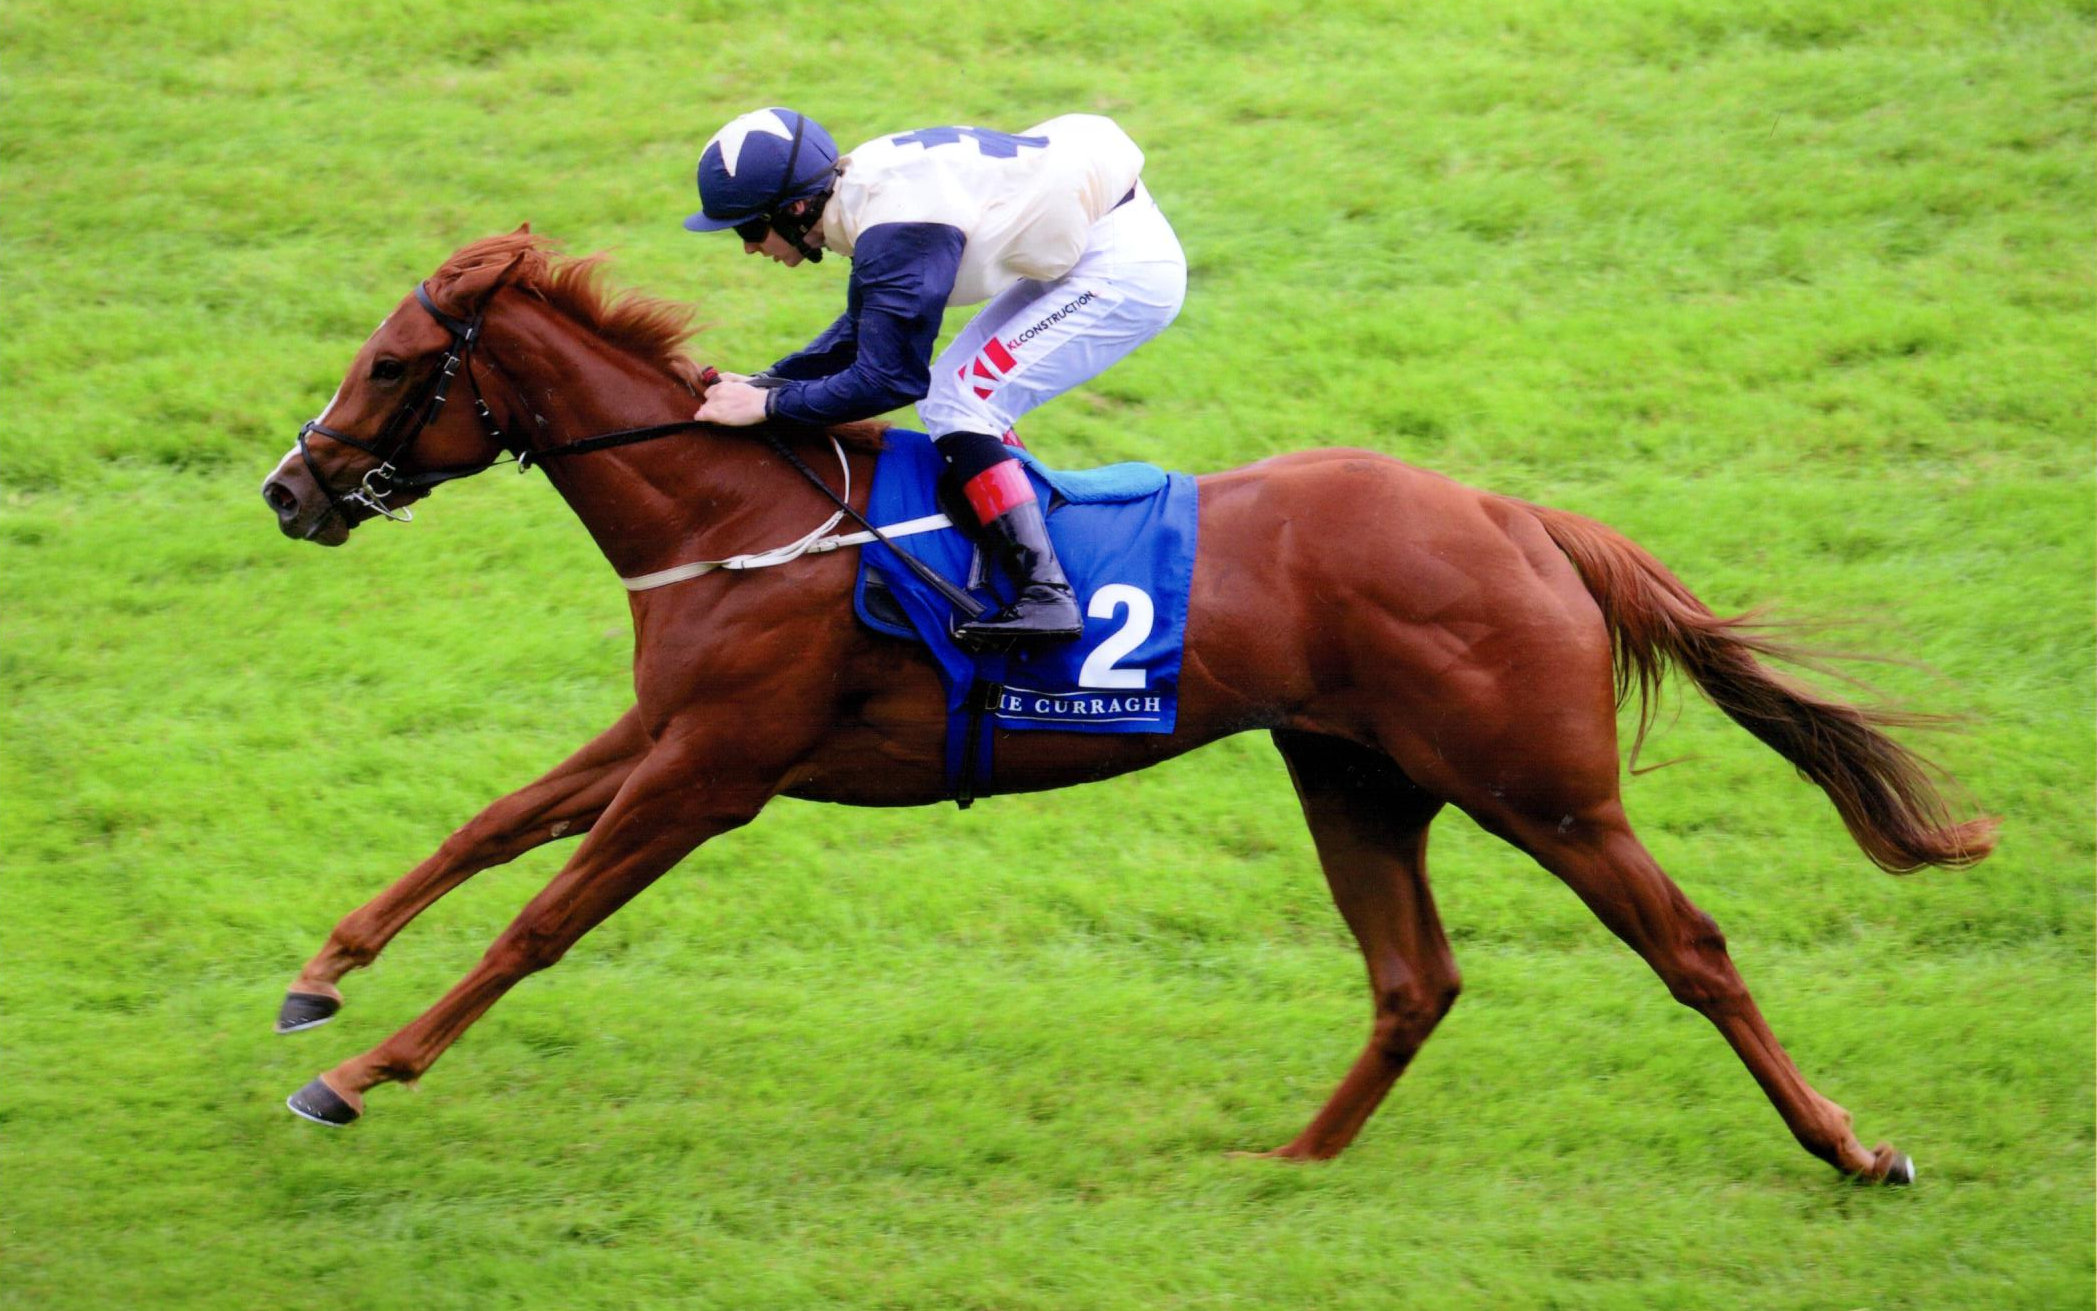 FRENCH RAIN impresses first time out at The Curragh for owners Newtown Anner Stud, 21st July 2019